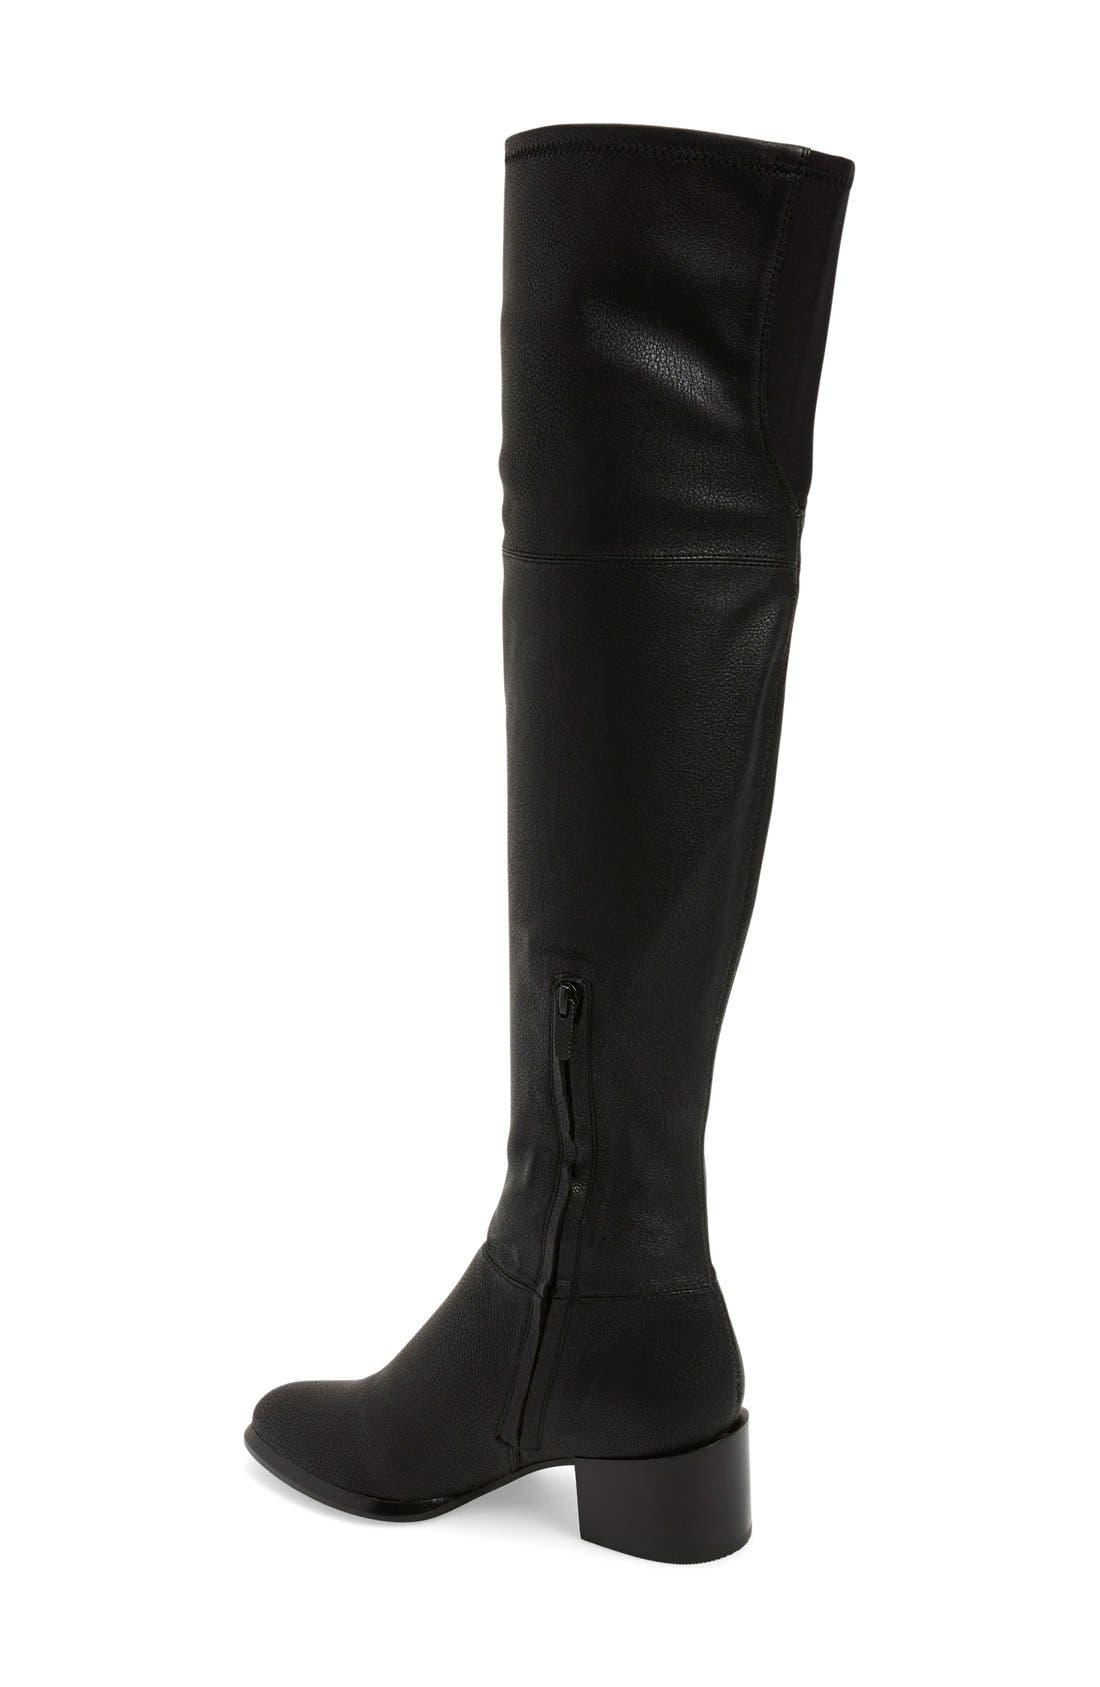 CALVIN KLEIN, 'Nani' Over The Knee Boot, Alternate thumbnail 3, color, 001